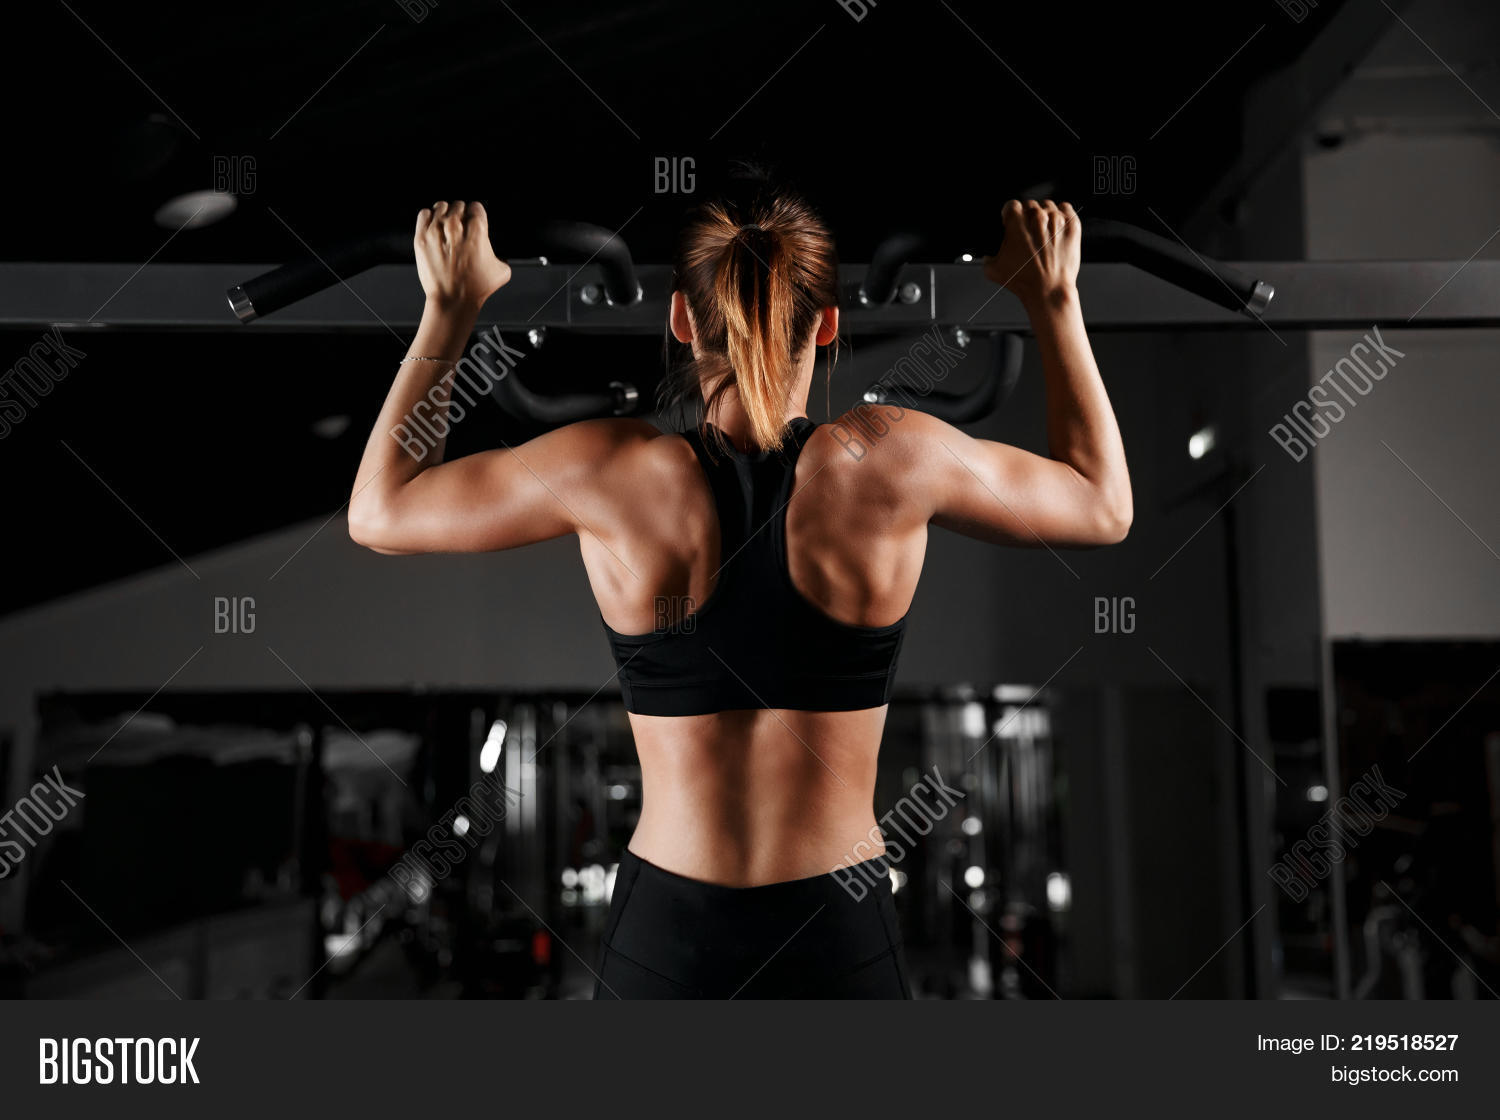 Strong Fit Girl In Sportswear Doing Pull Up Exercise On Horizontal Bar Fitness Workout